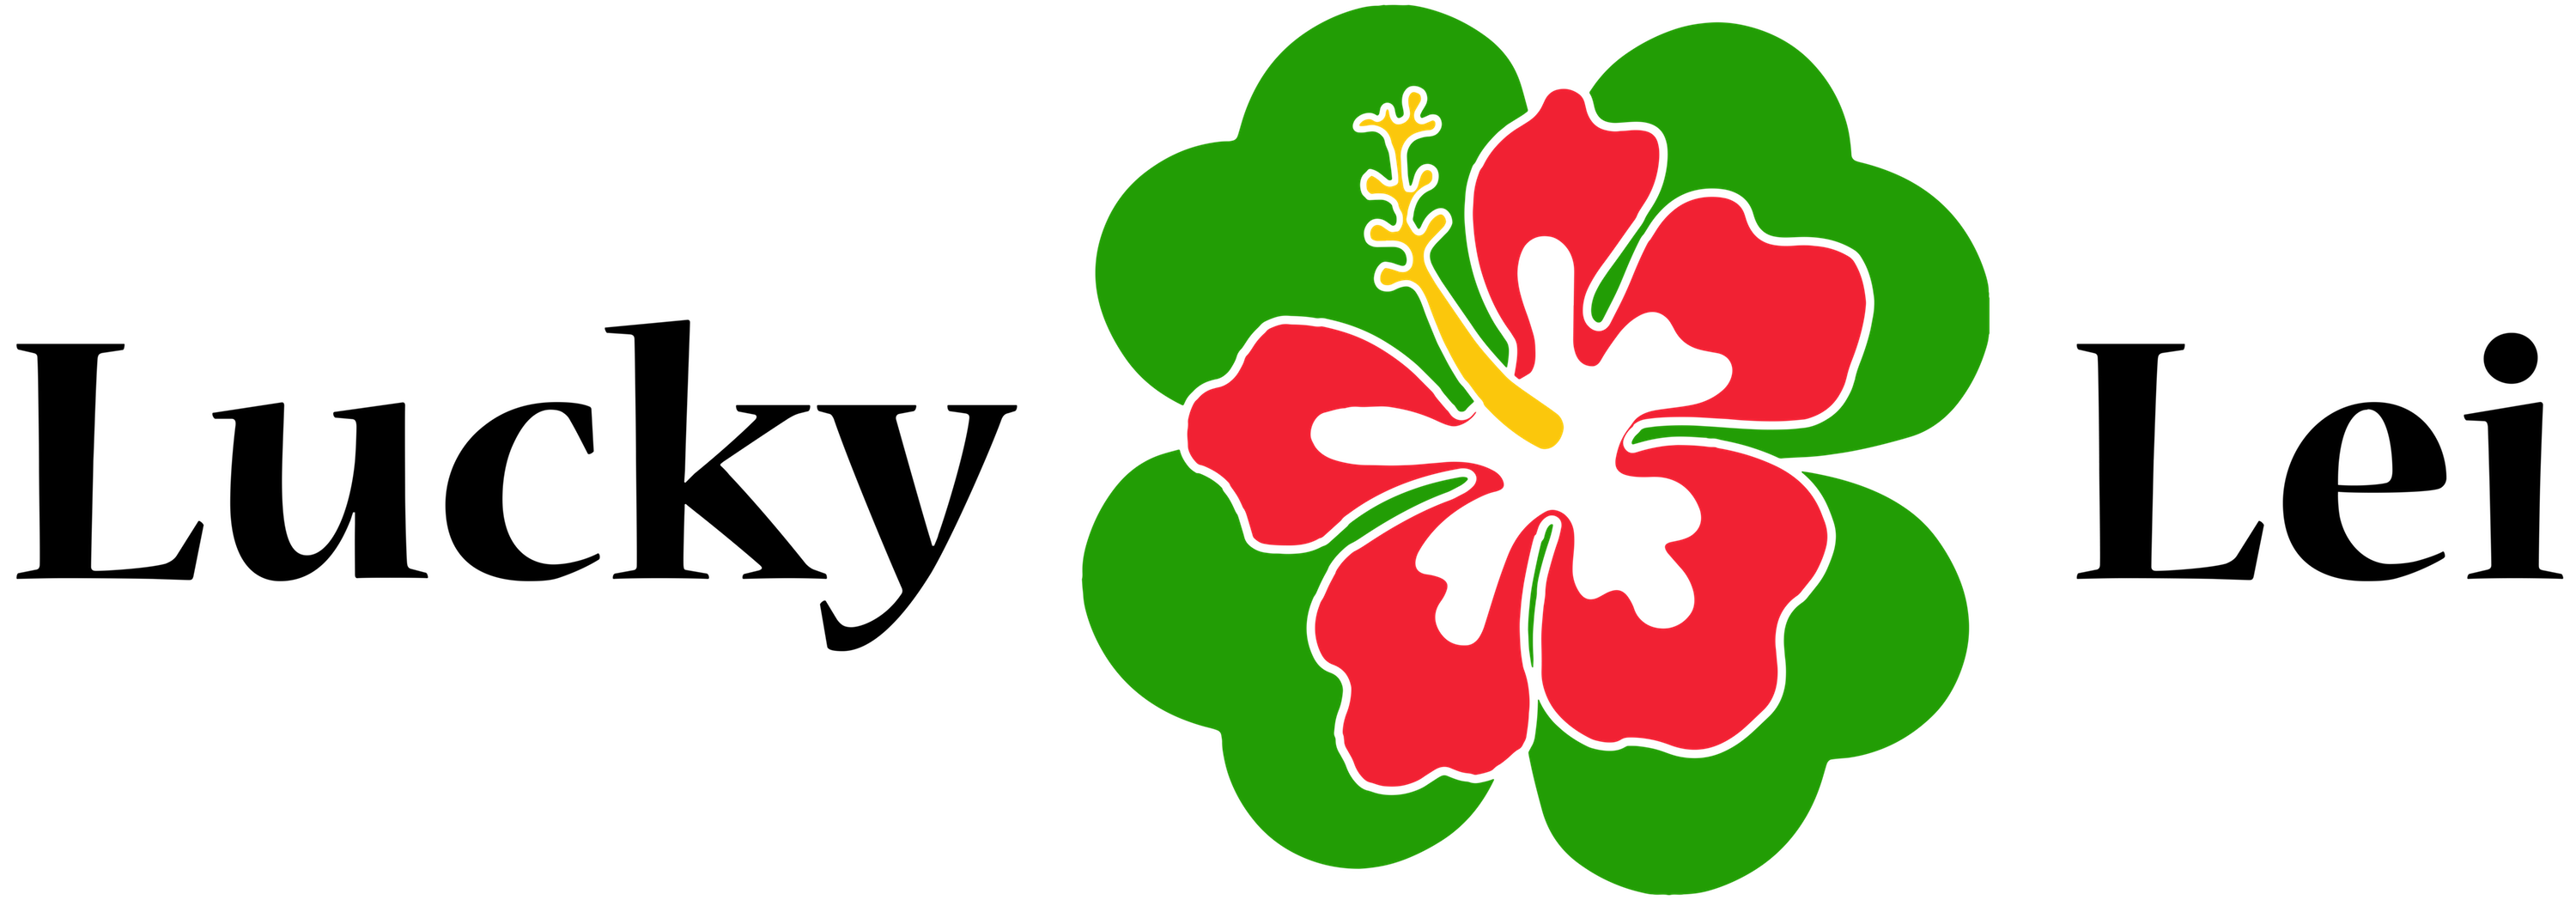 Hibiscus clipart aloha. Lucky lei charters f